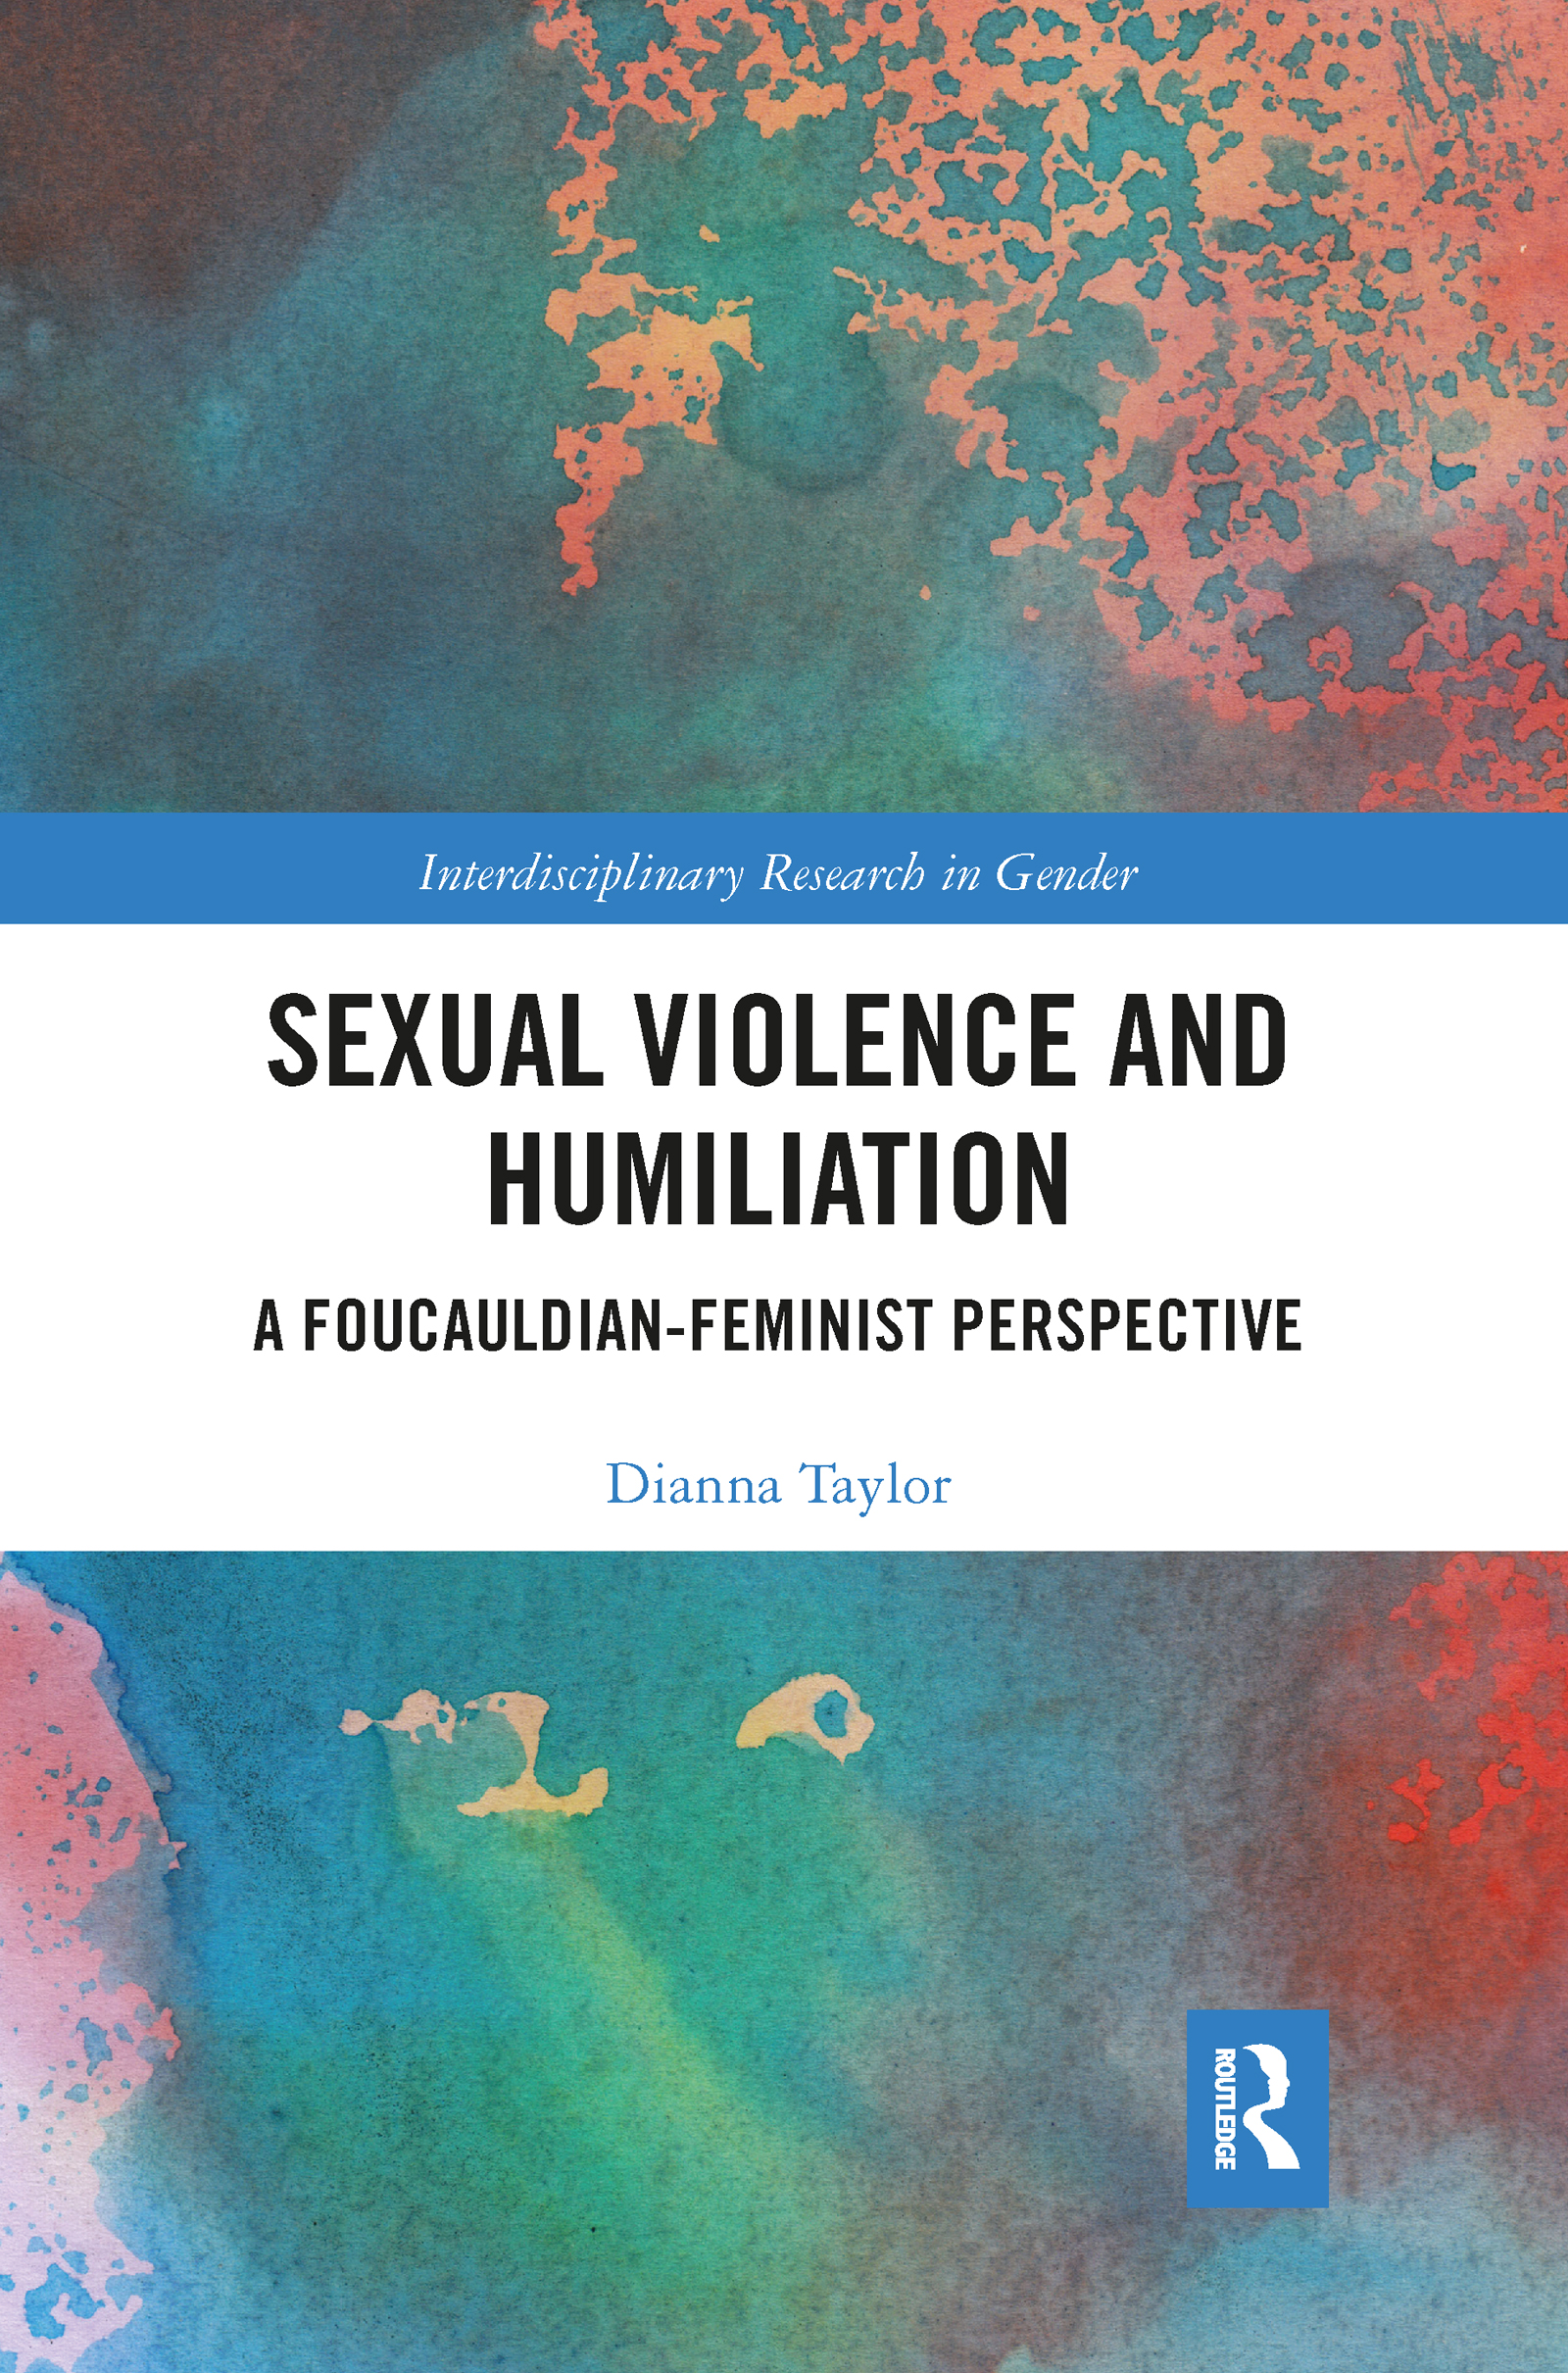 Sexual Violence and Humiliation